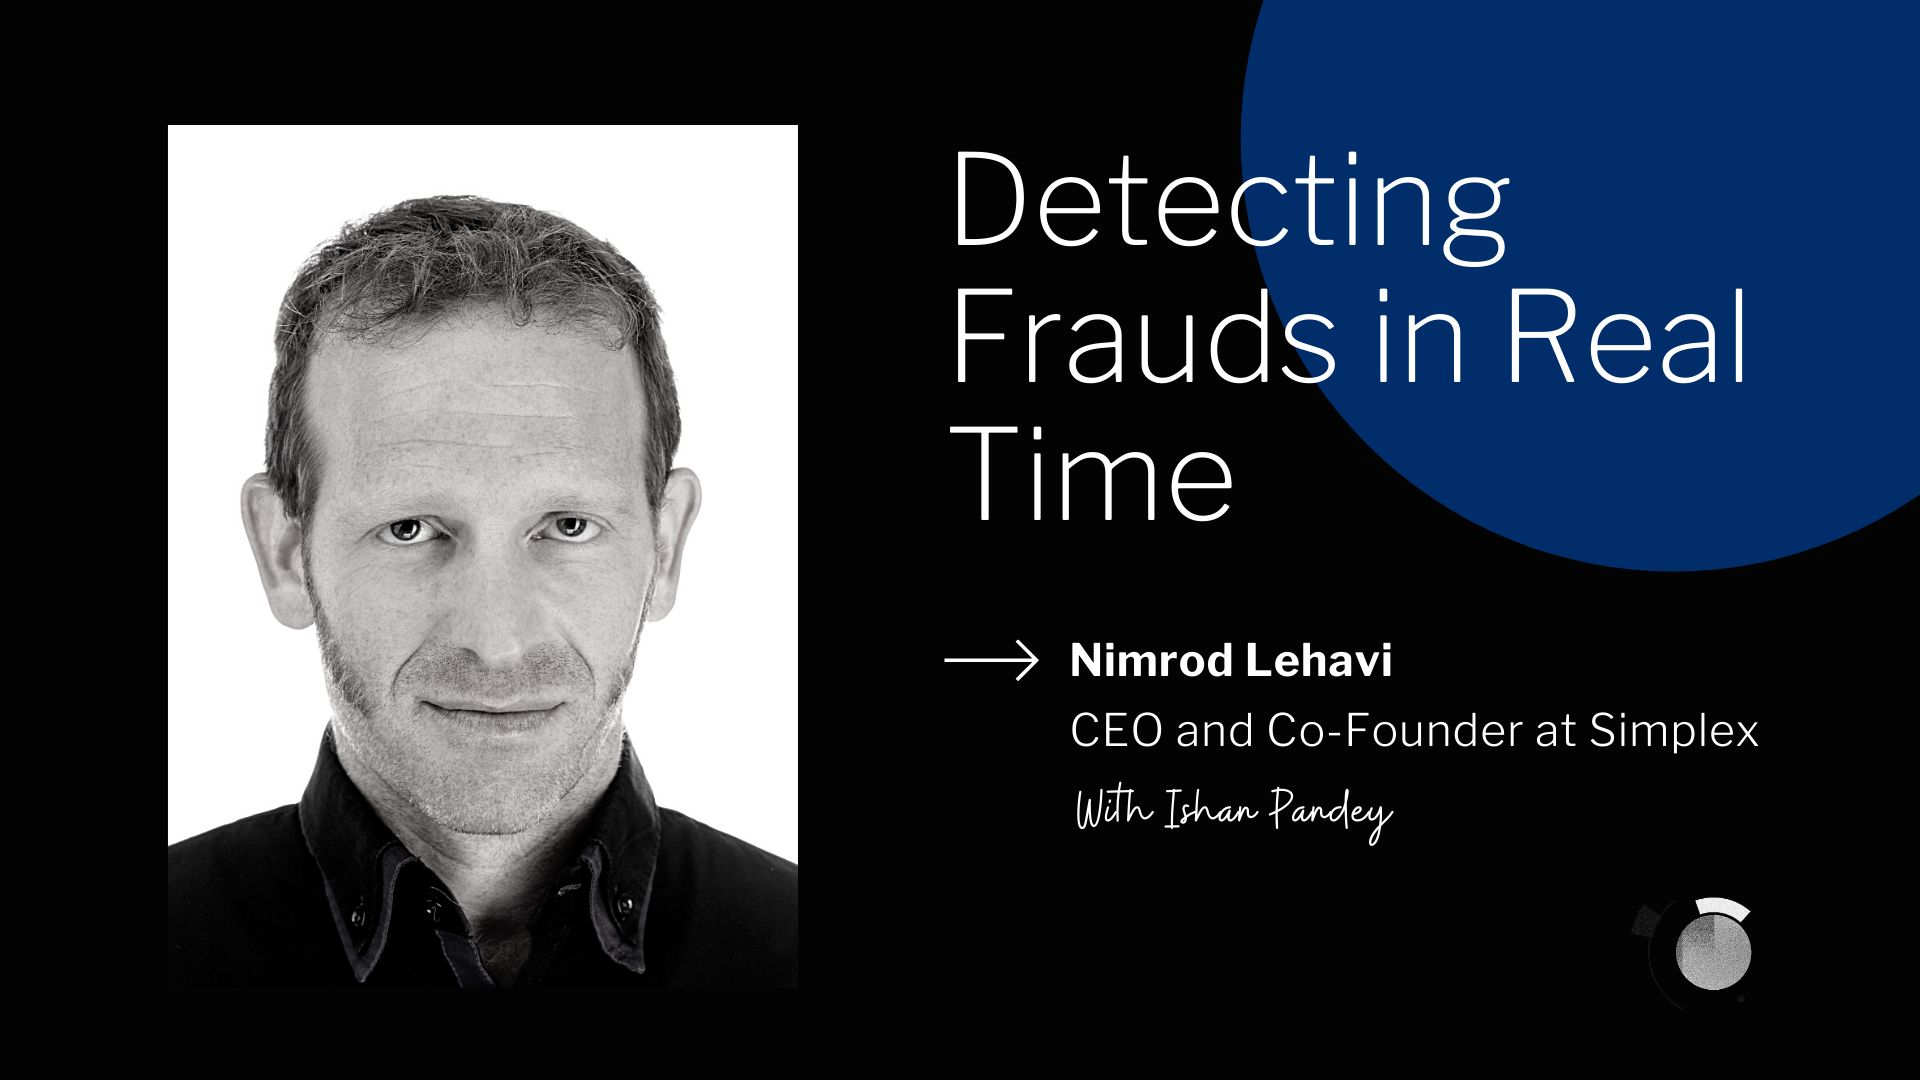 /fraud-prevention-requires-creative-and-analytical-thinking-to-stay-two-steps-ahead-nimrod-lehavi-1l3233l7 feature image